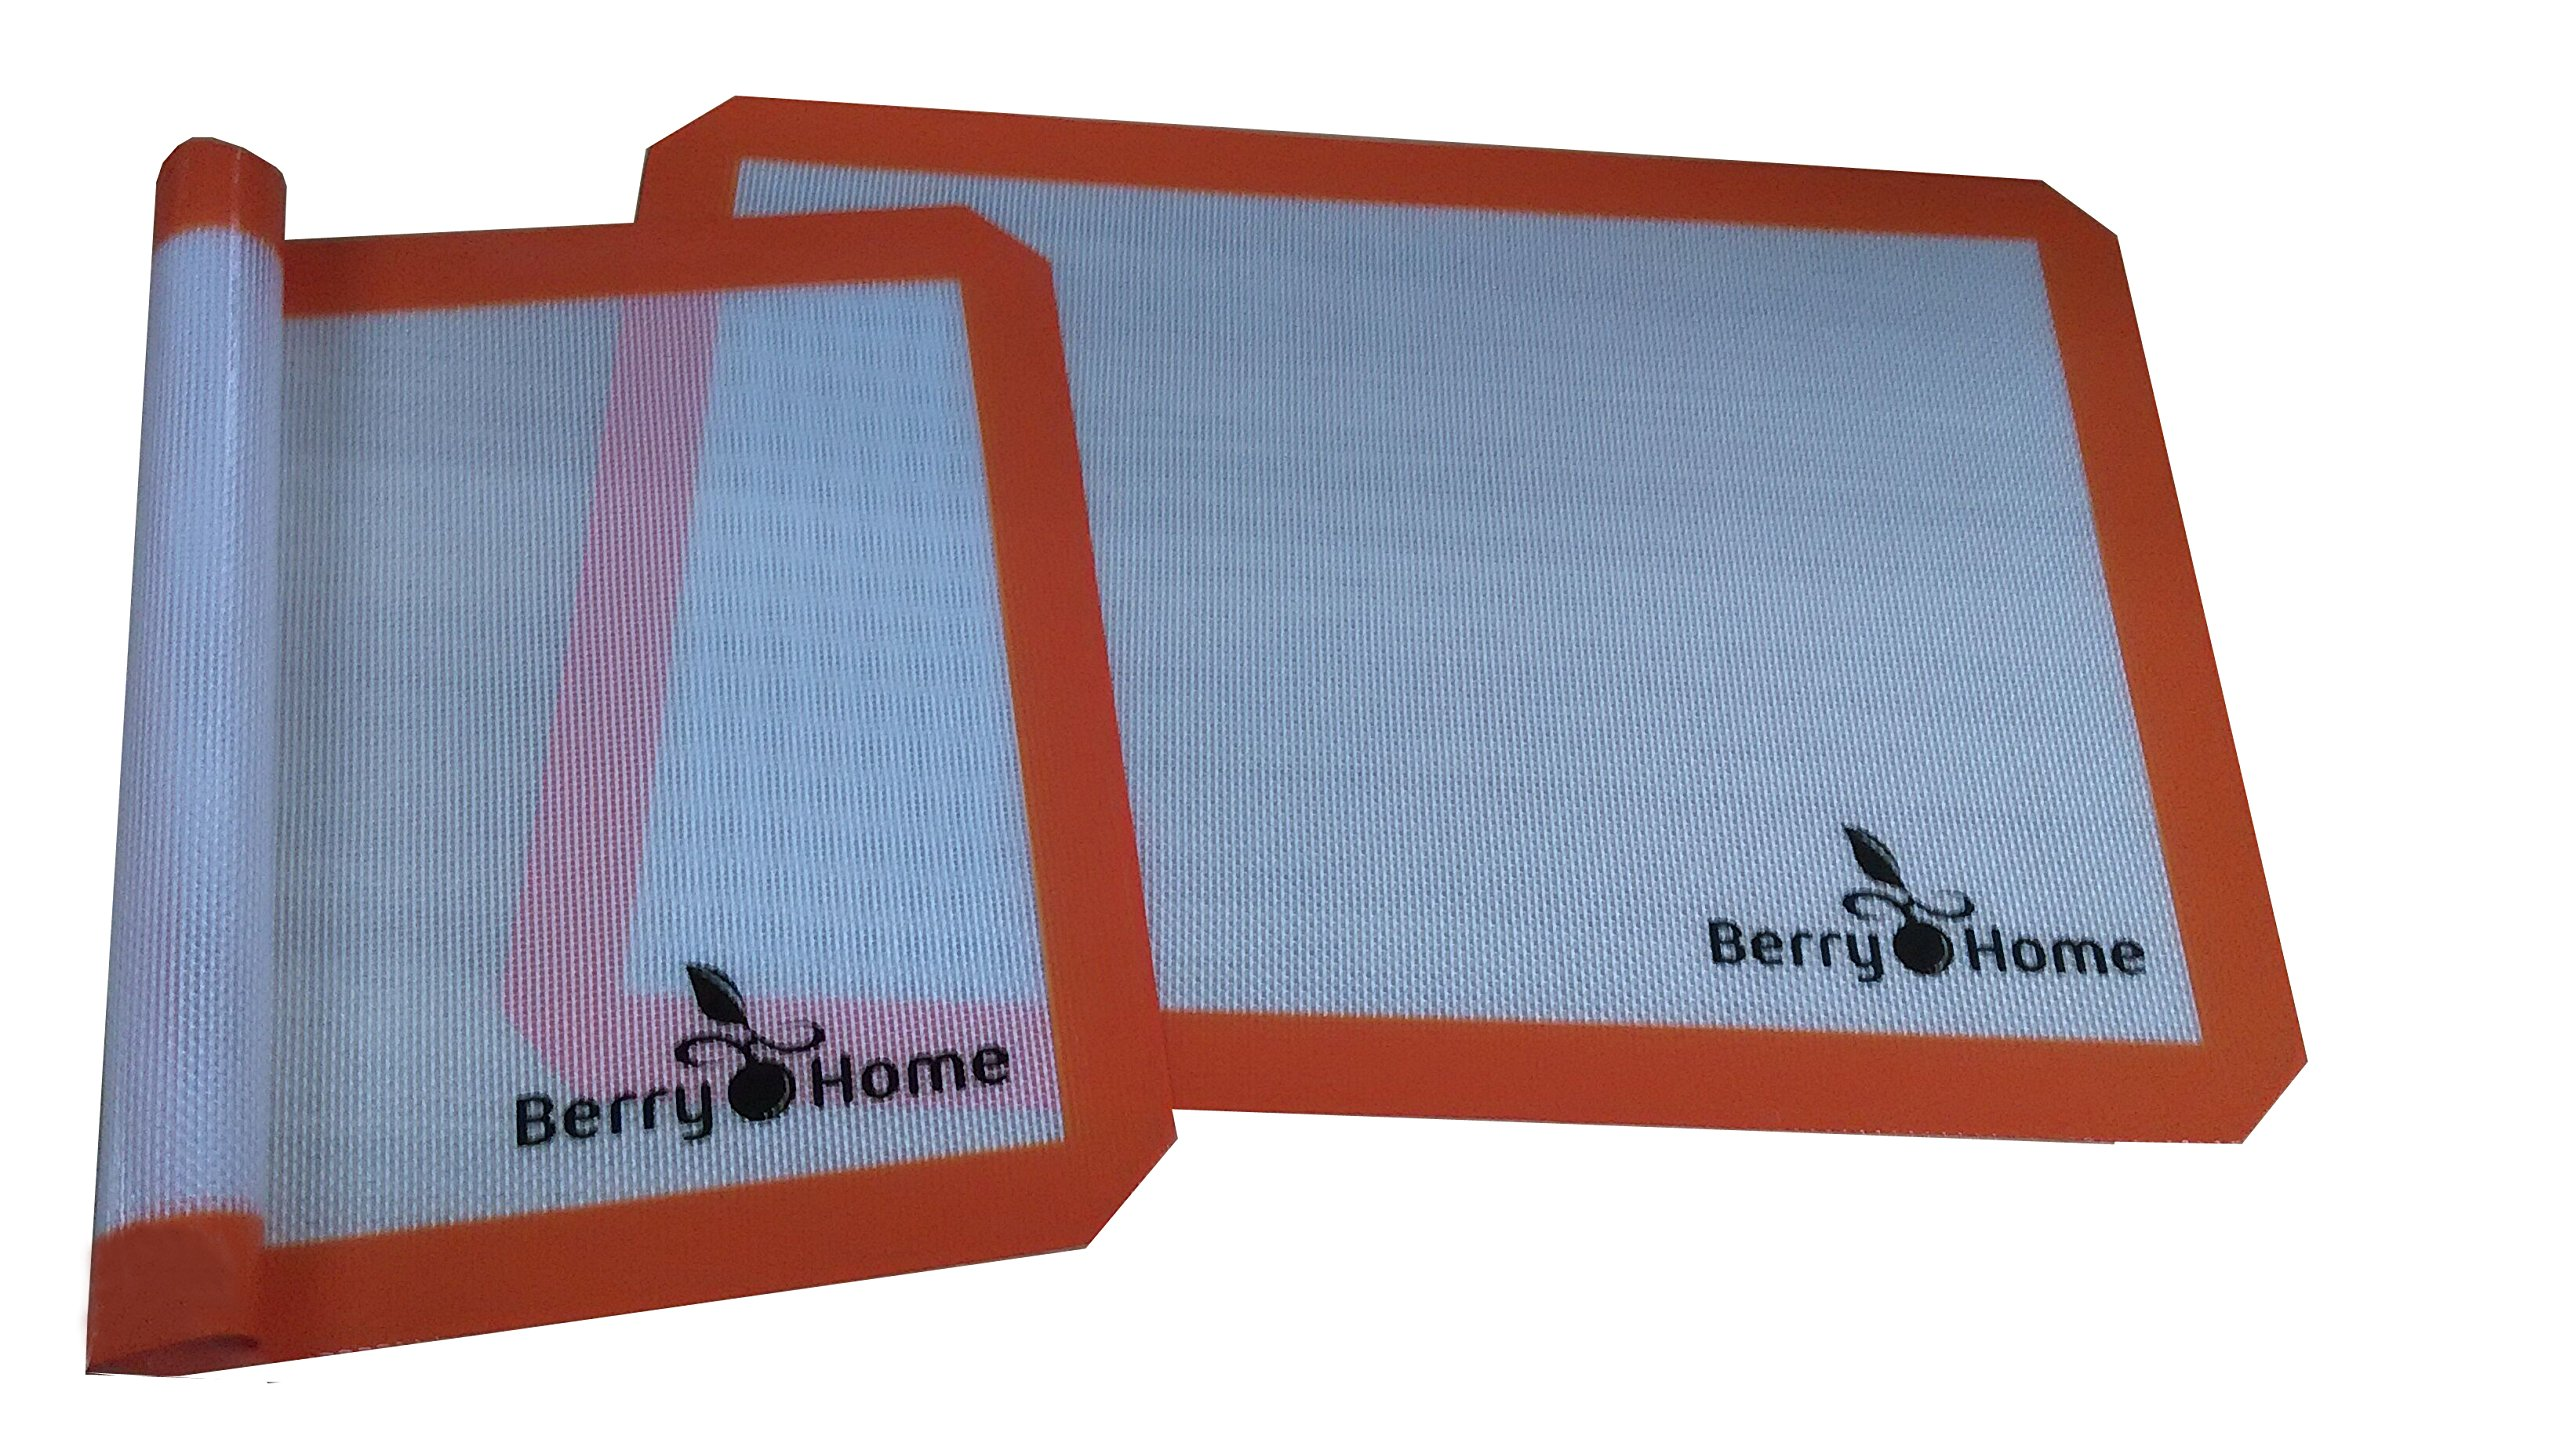 Silicone Baking Mat Parchment Replacement for Baking and Rolling Pizza Dough by Berry Home - 2 Pack by Berry Home (Image #3)